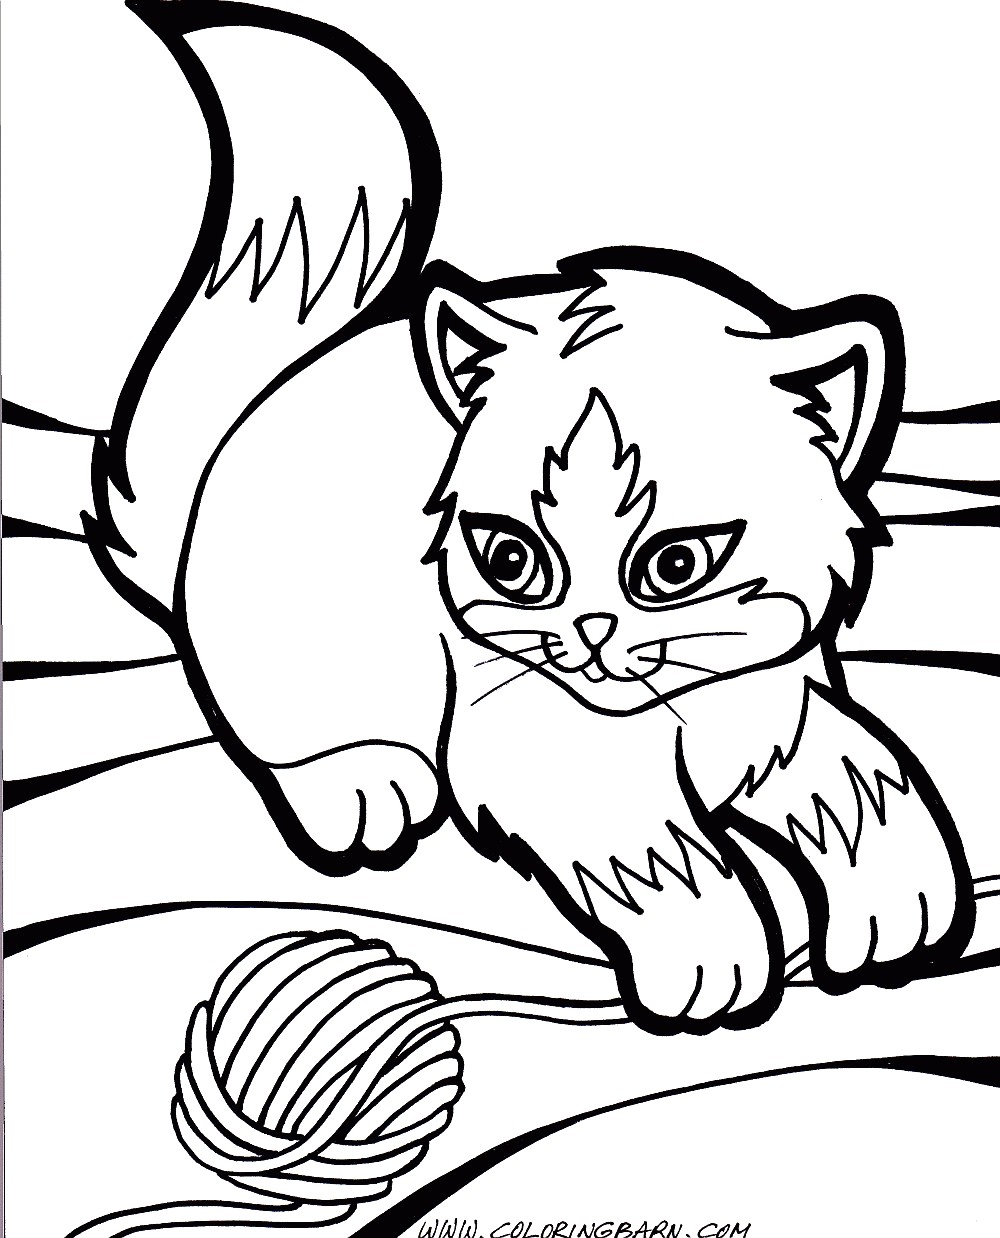 Kittens Coloring Pages Cooloring Book Marvelous Puppy And Kitten Coloring Pages Cat Pages